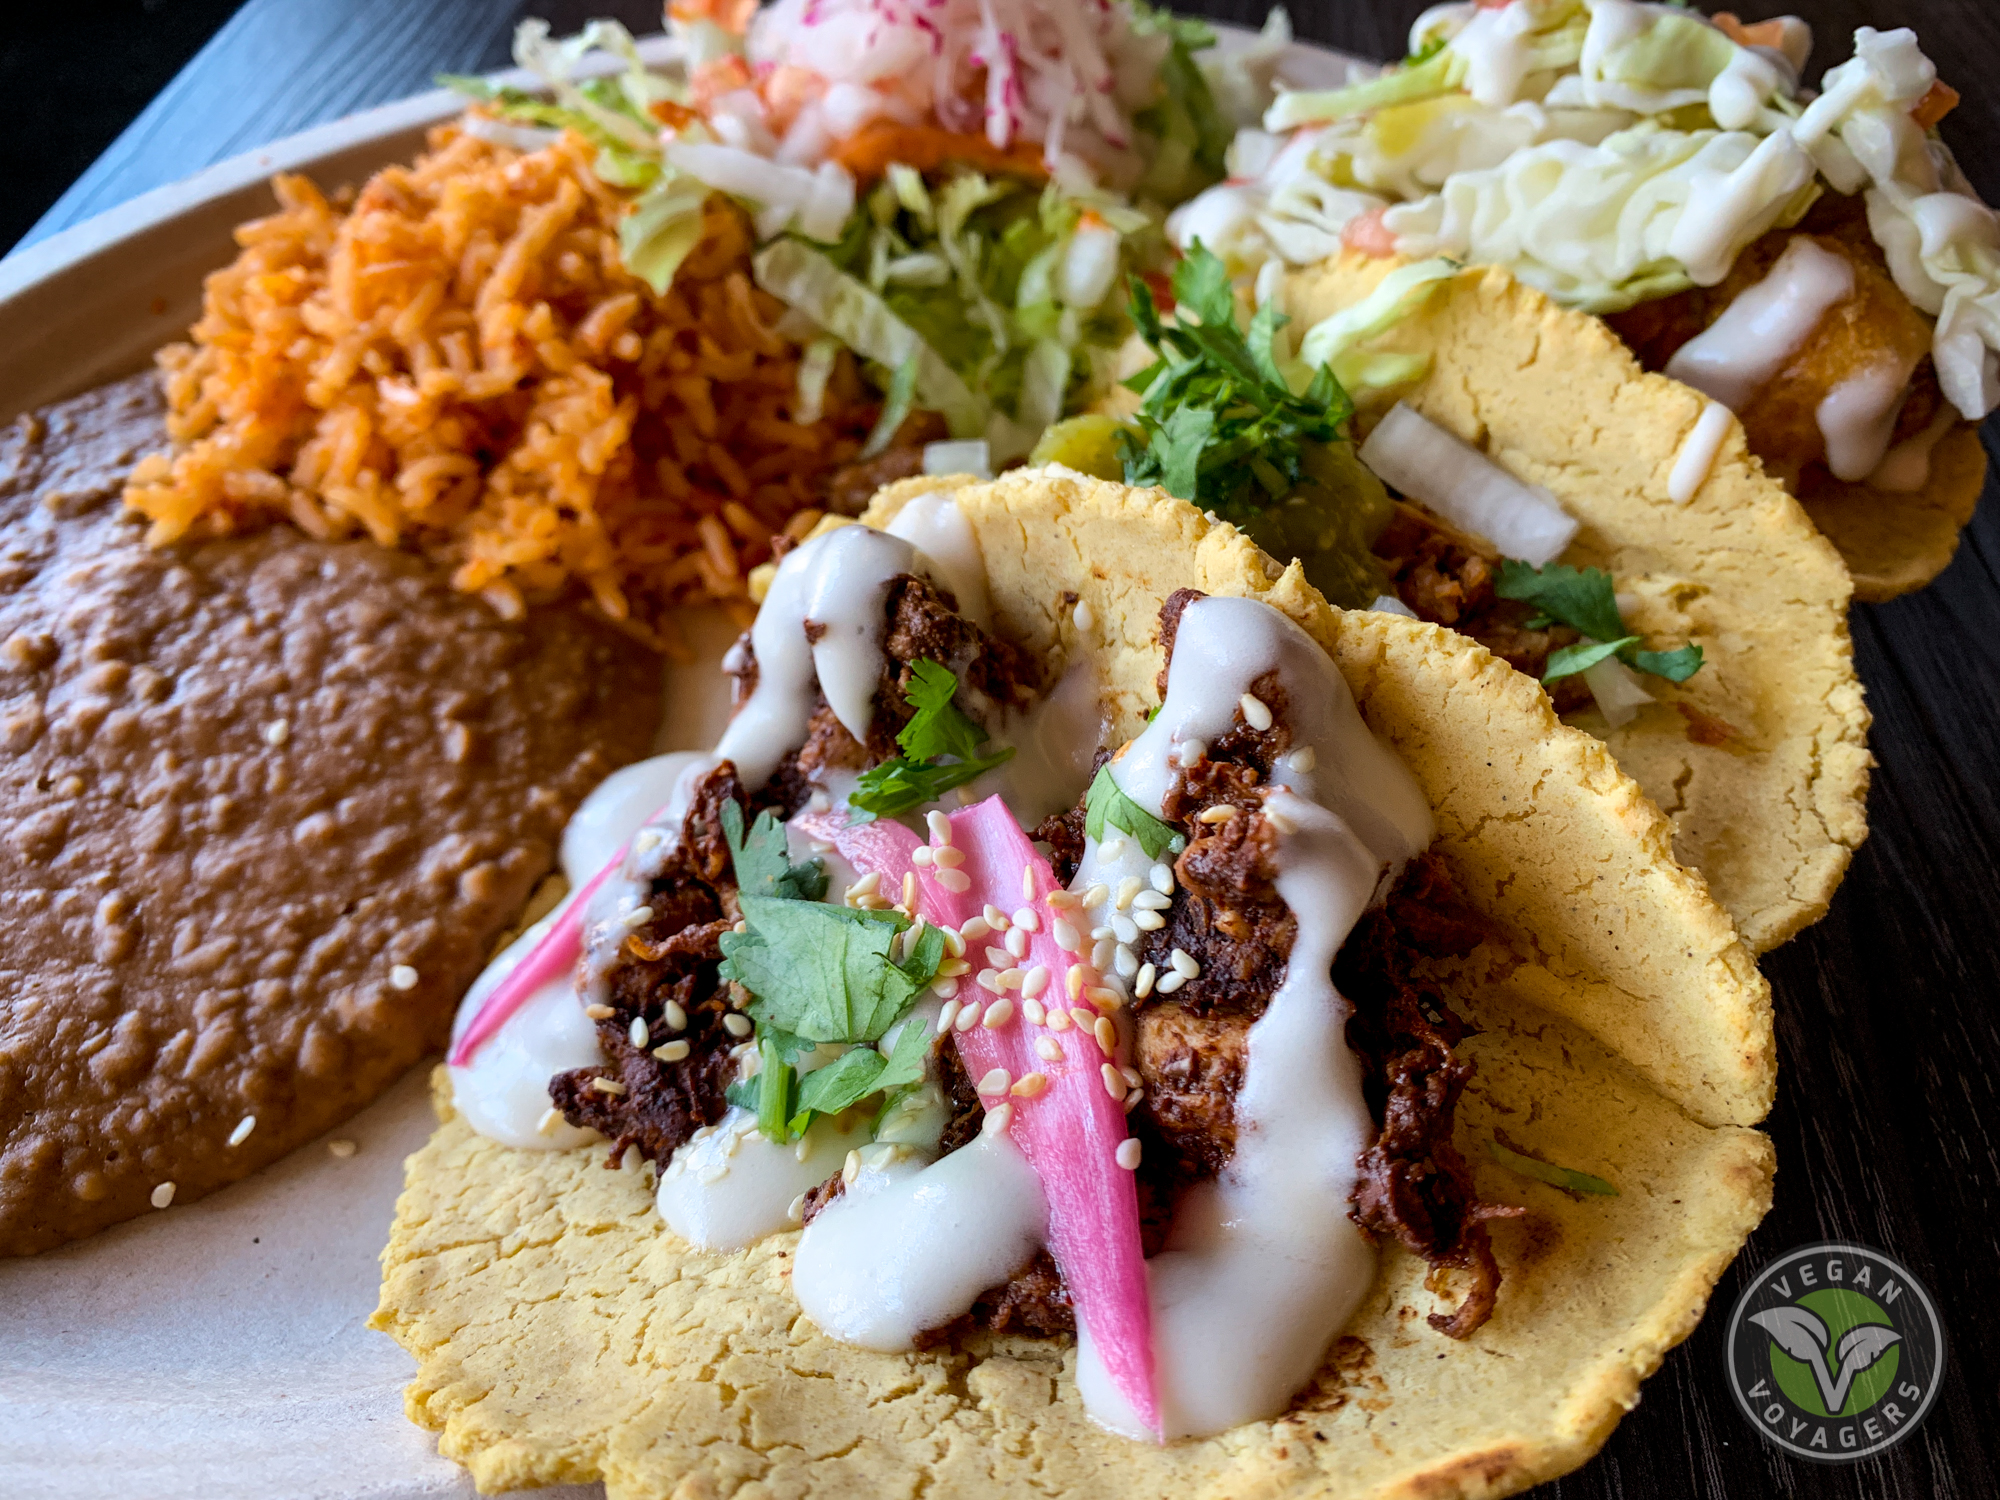 Best Vegan Mexican Food in the US | Doomie's Next Mex